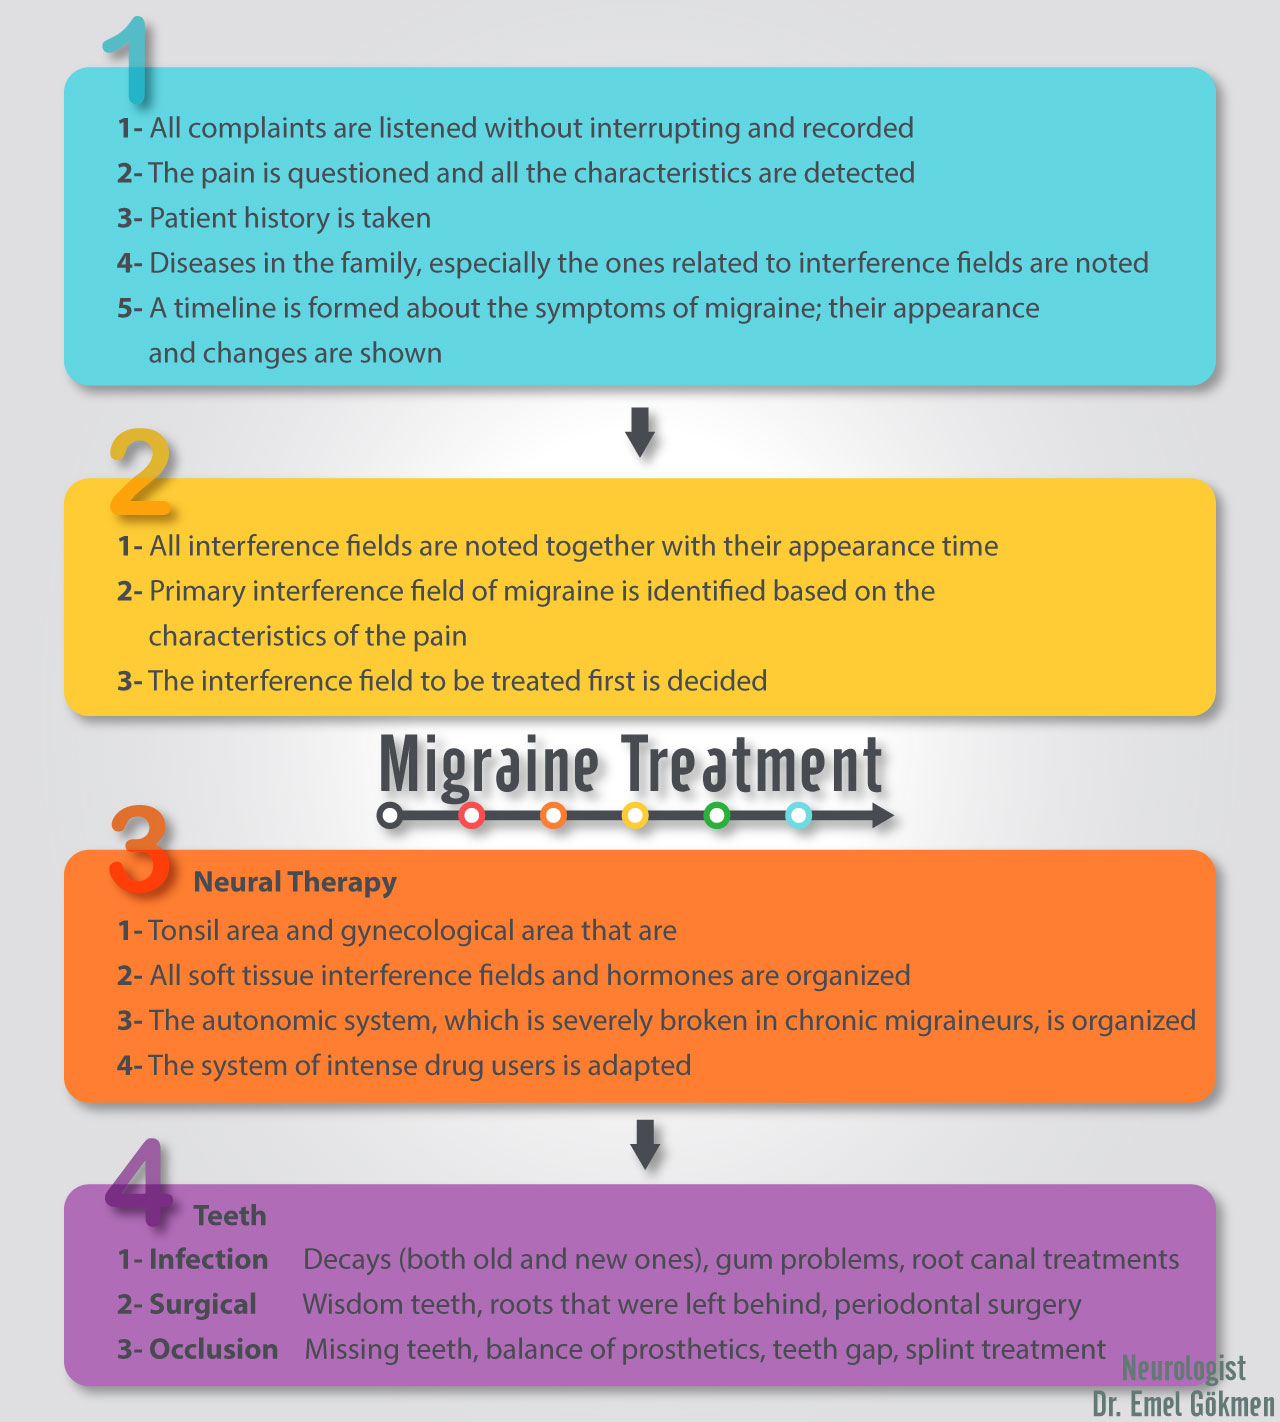 Migraine treatment infographic Dr. Emel Gokmen